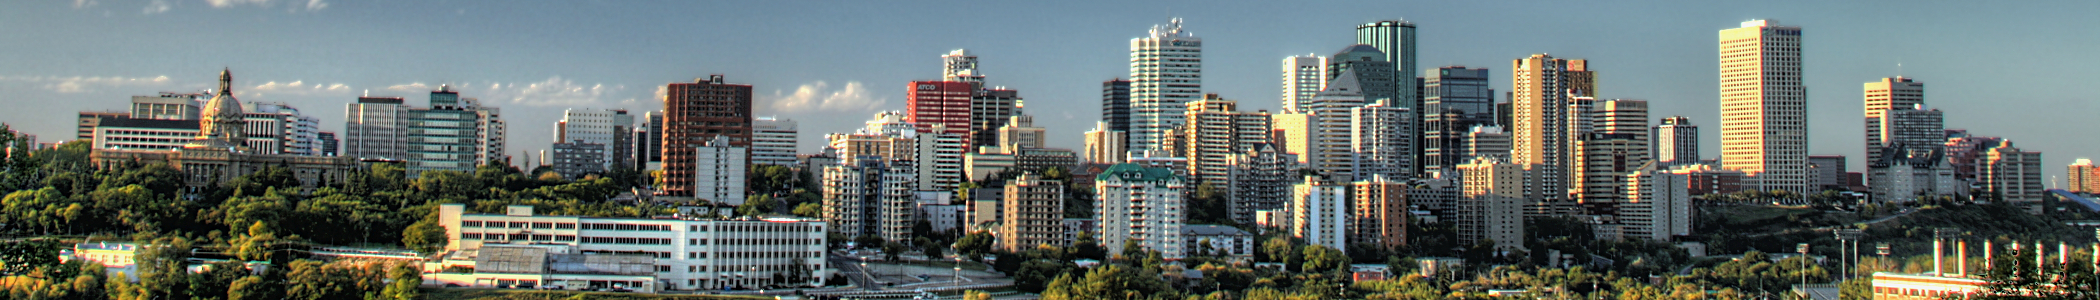 Image result for edmonton view for website banner